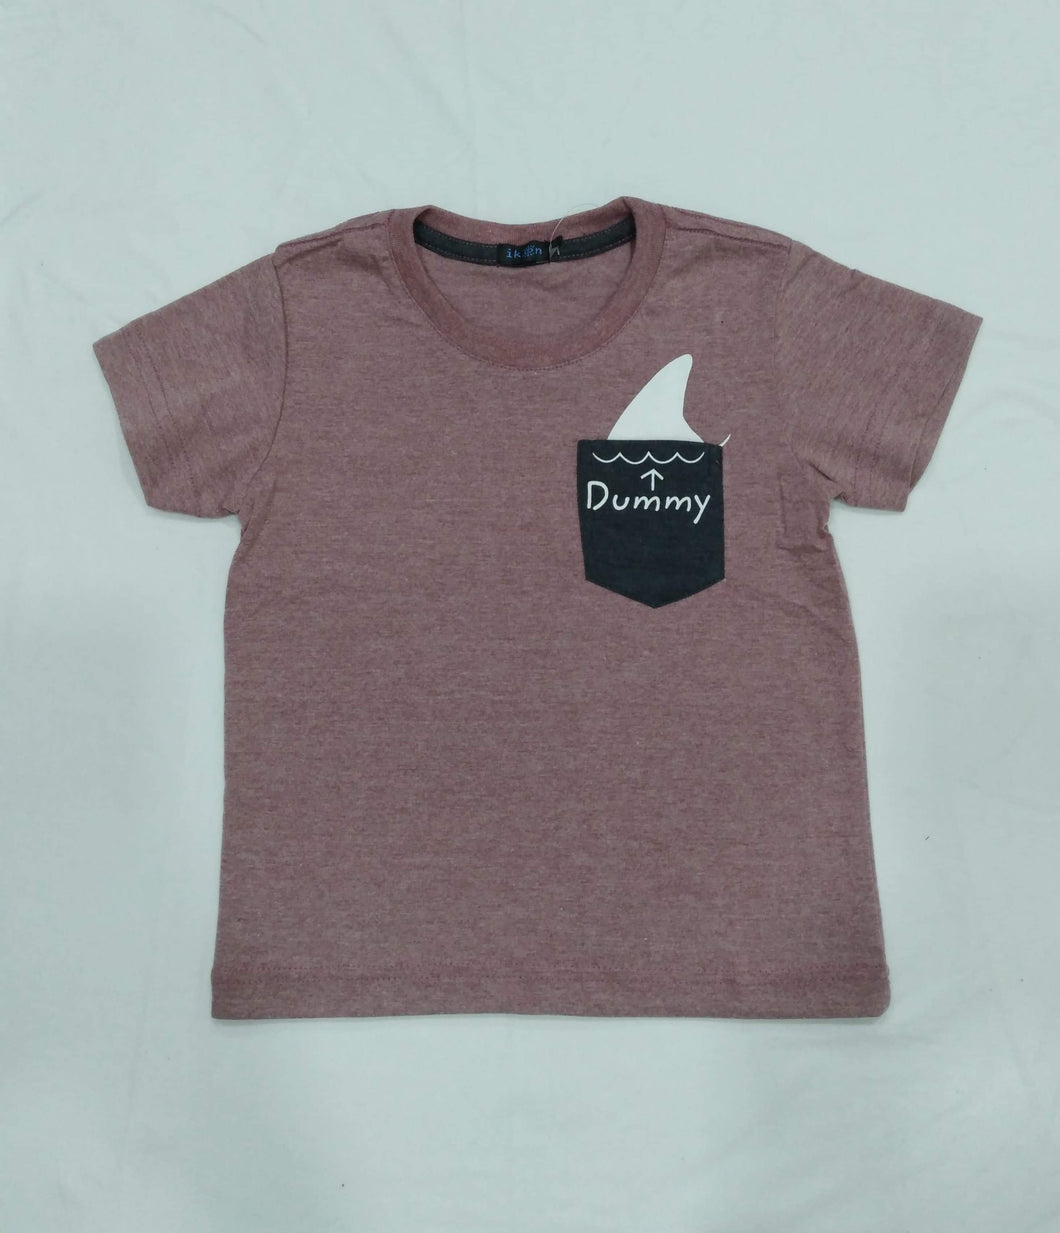 IKON | DUMMY (PRINTED POCKET) SIP ROSE WOOD TODDLER SHIRT